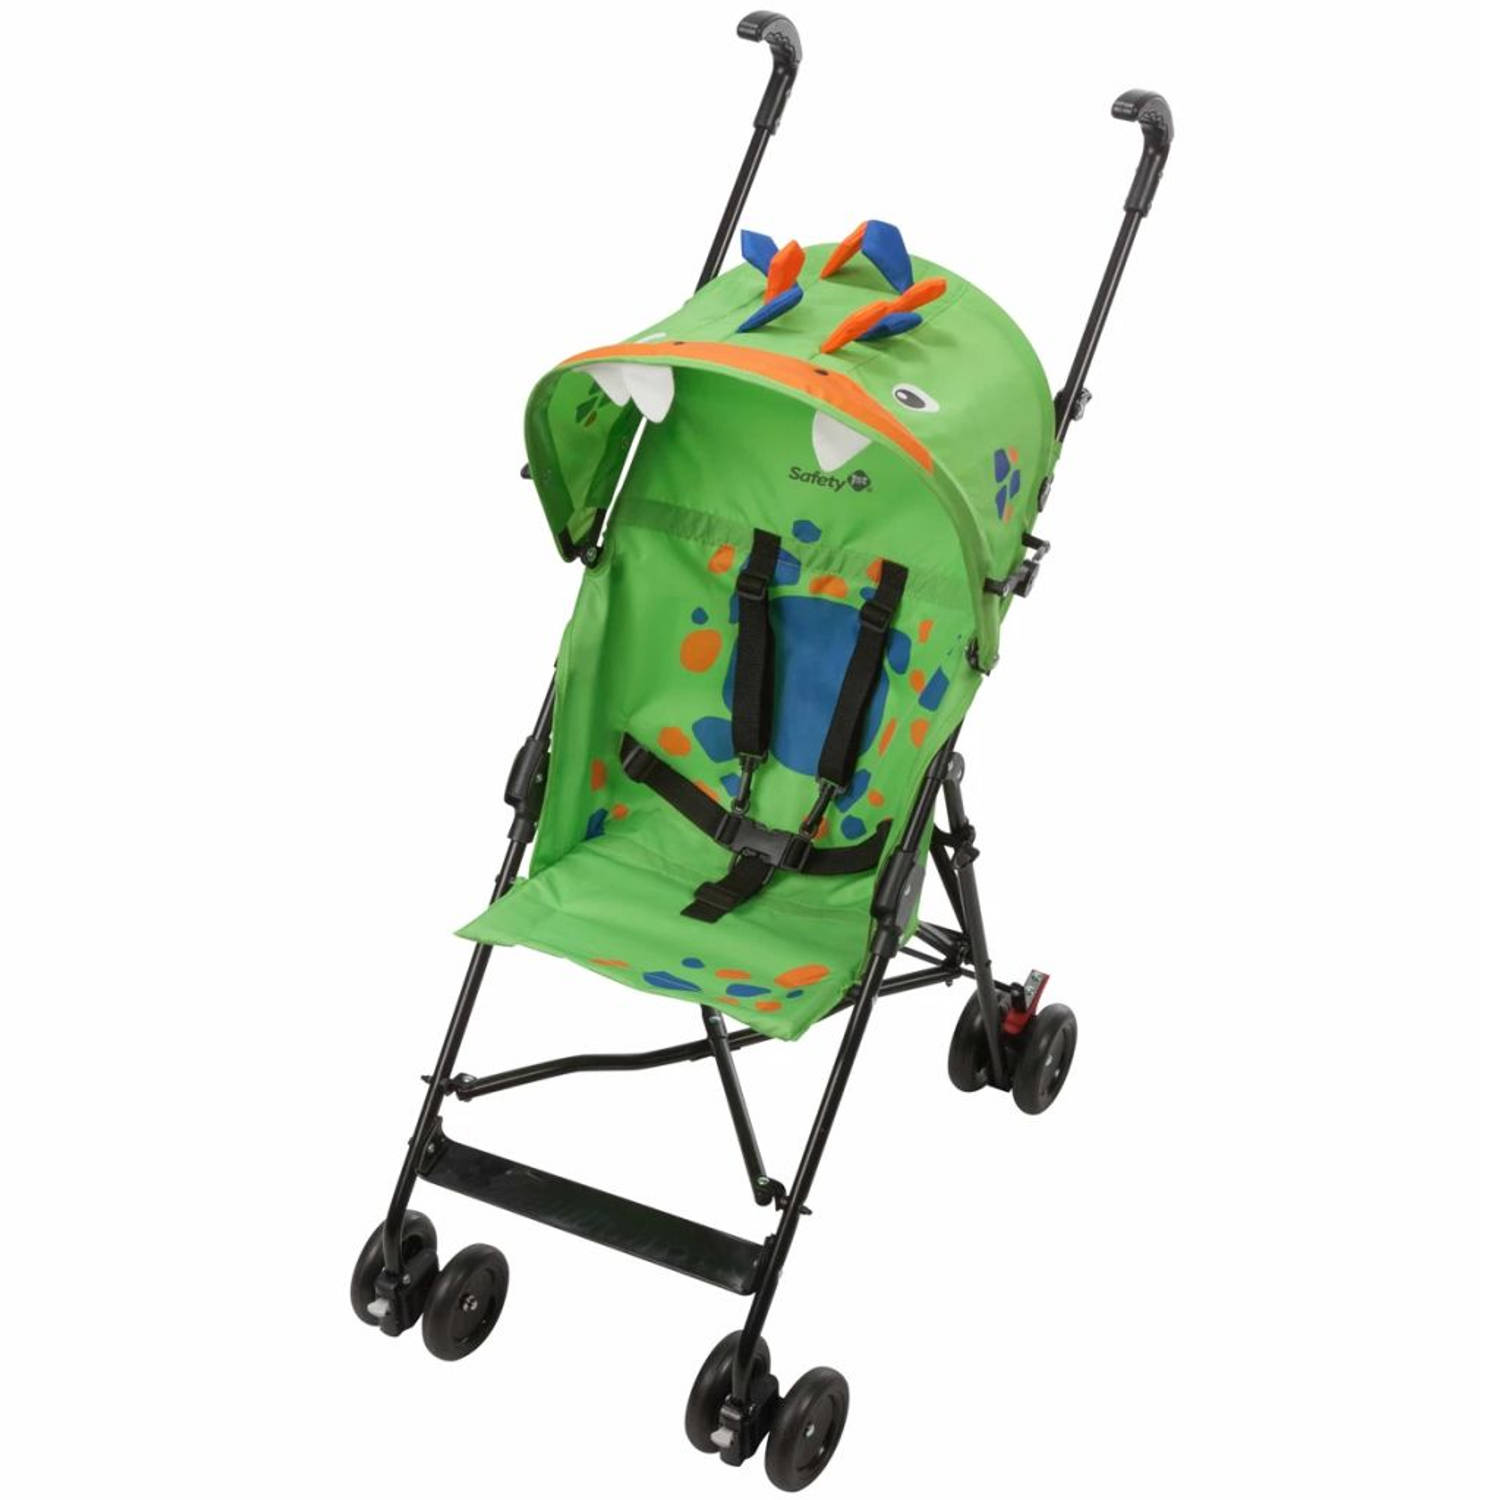 Safety 1st Buggy Crazy Peps Spike groen 1187540000